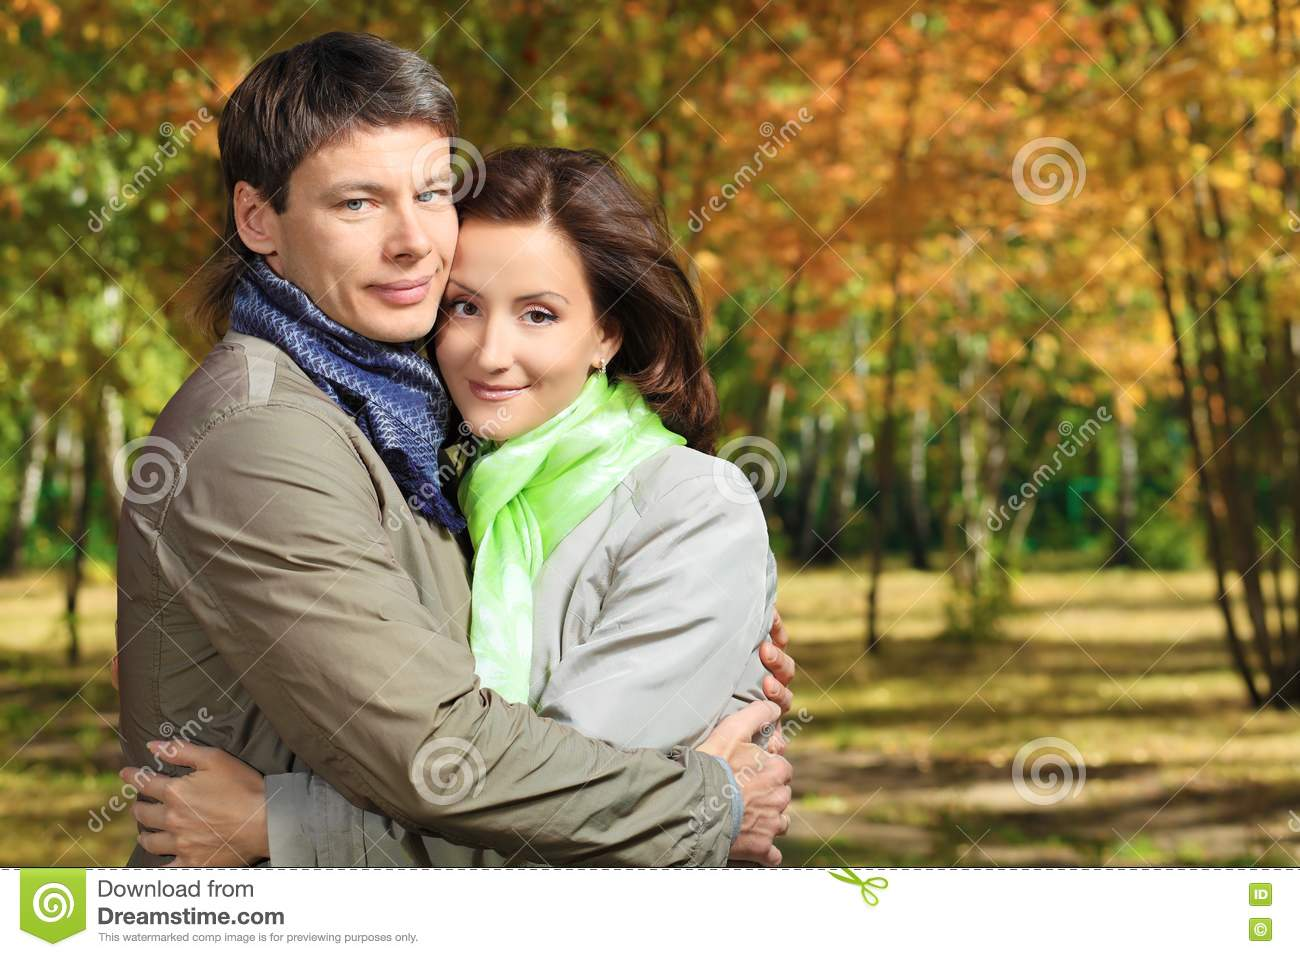 Family Couple Stock Photo - Image: 16256040